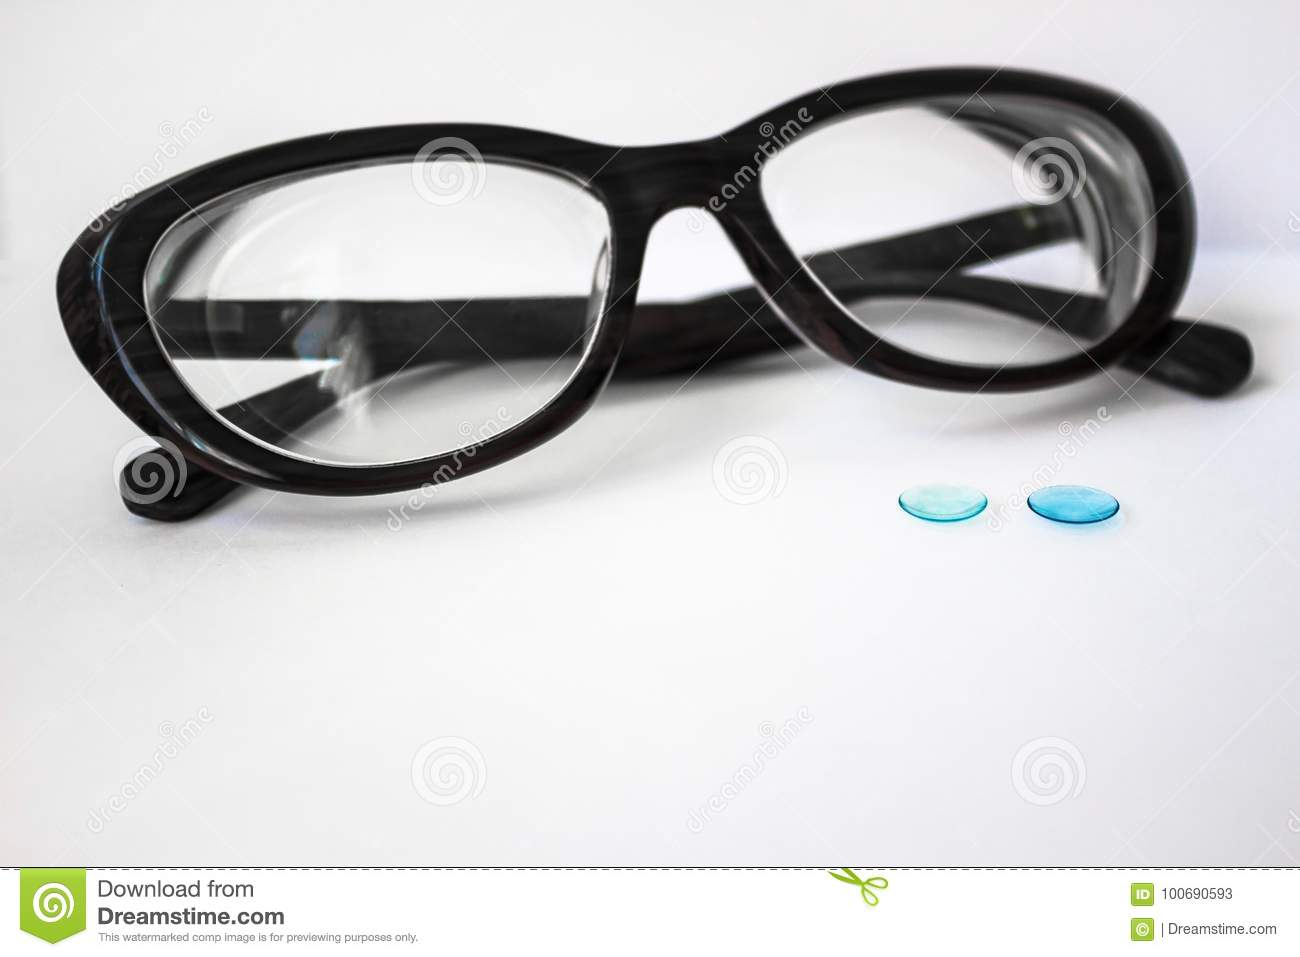 eb9e83d8422 Female Glasses And Contact Lenses. Stock Image - Image of collation ...